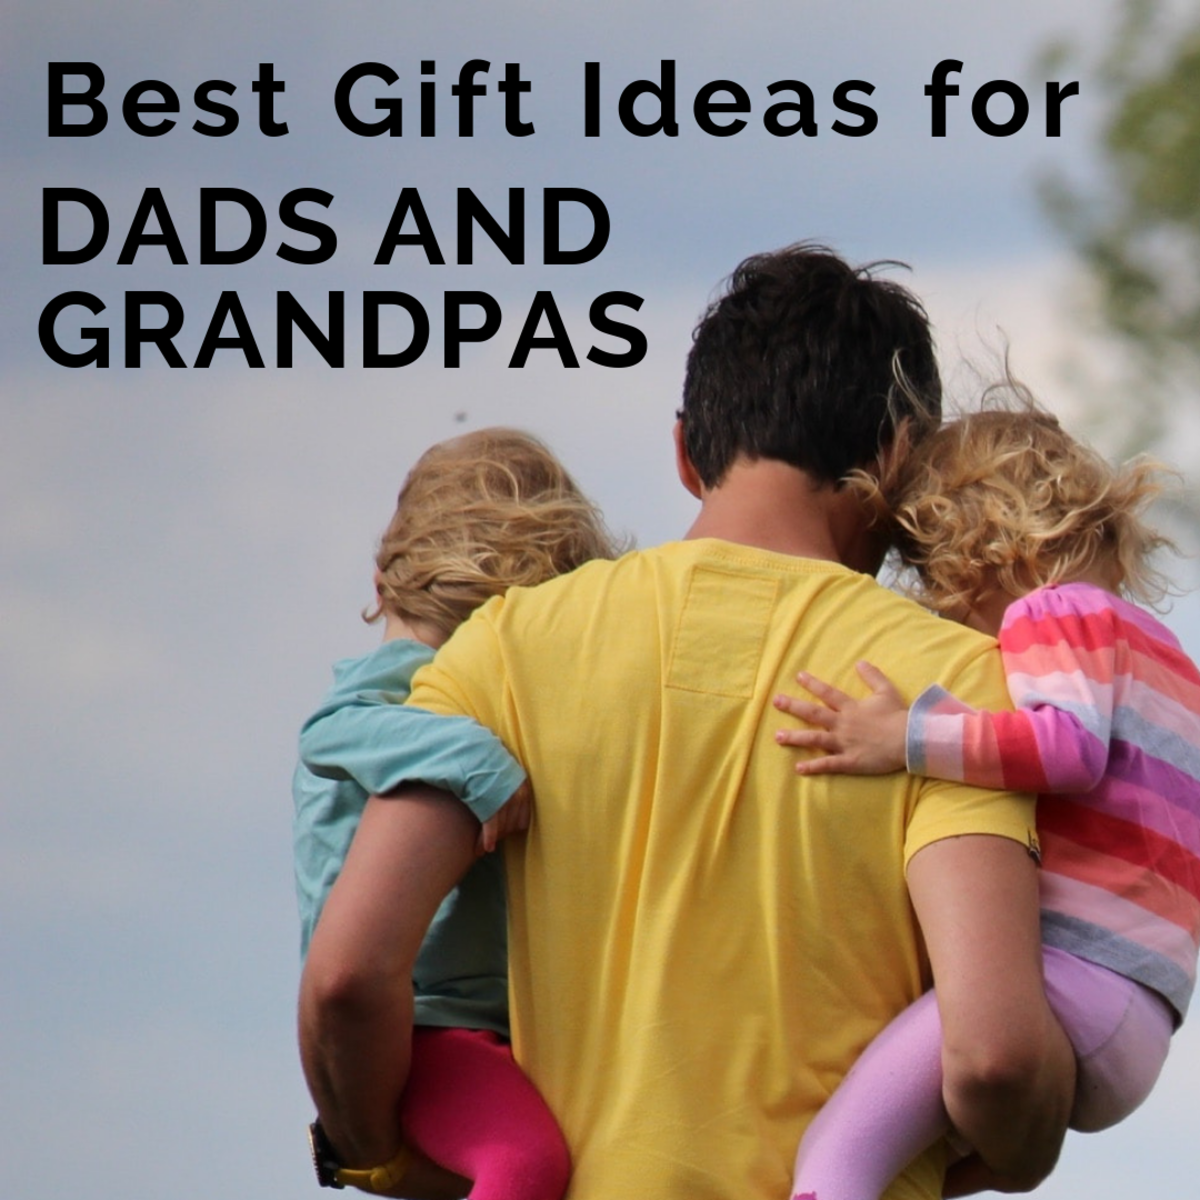 Best Gifts for Dads or Grandpas